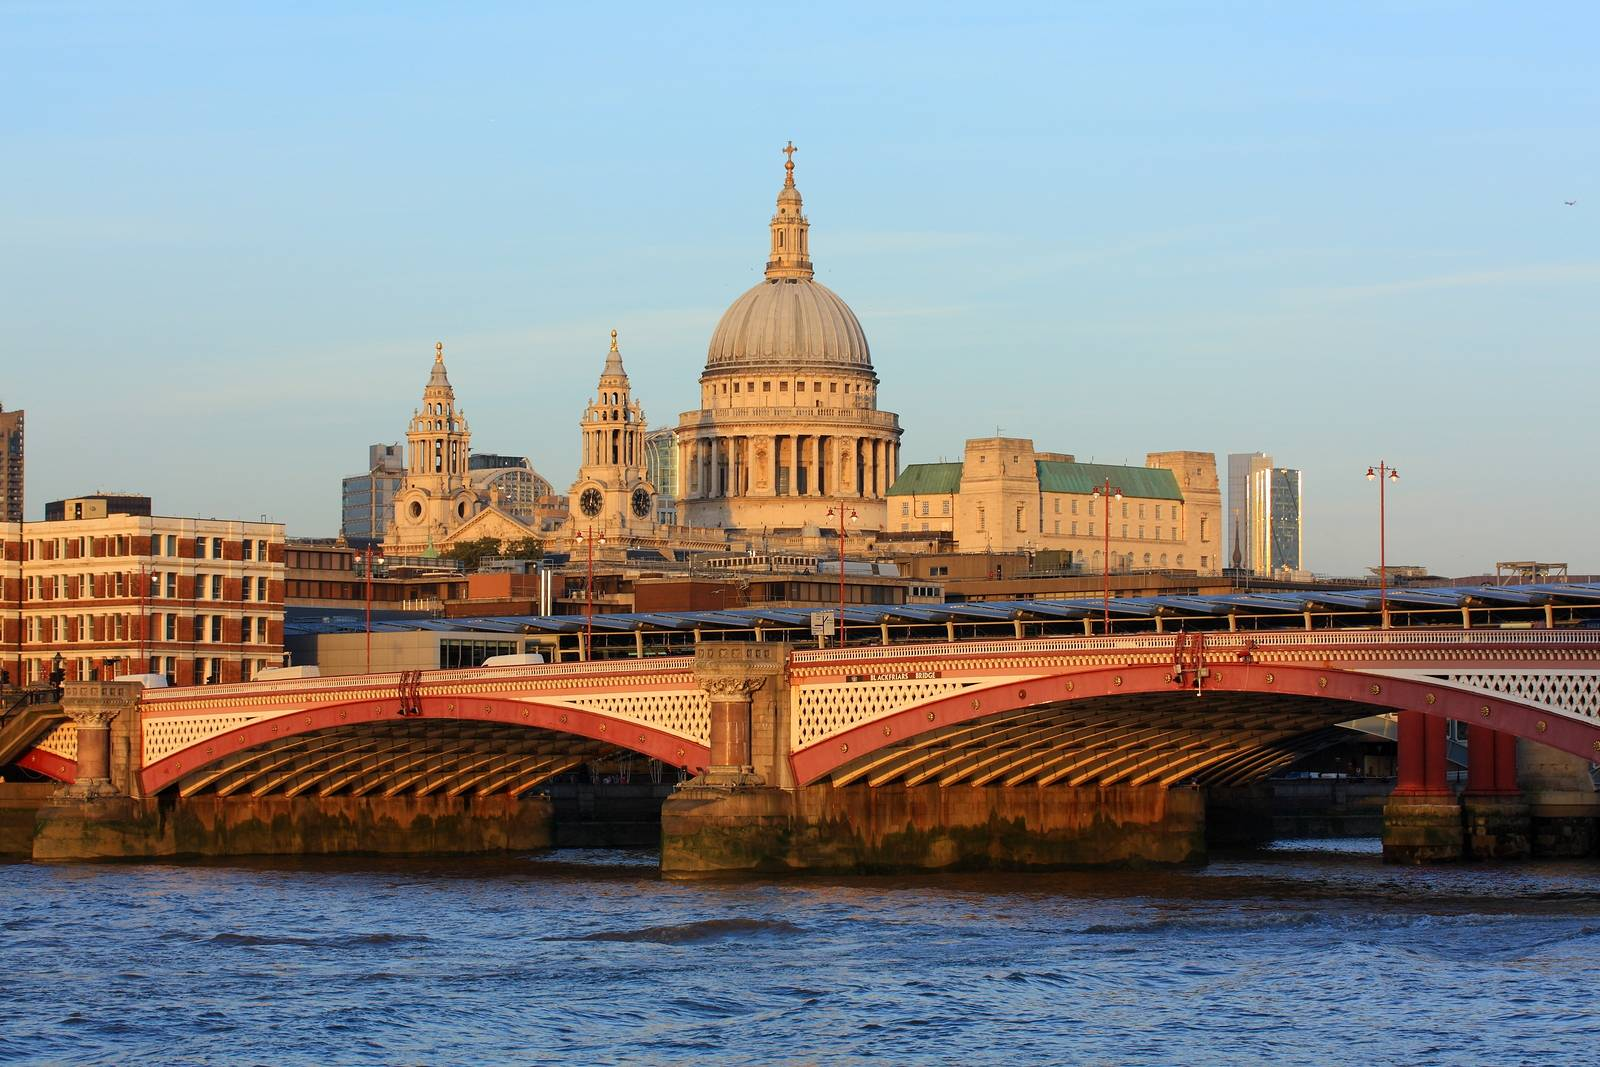 Image of St. Paul's Cathedrals